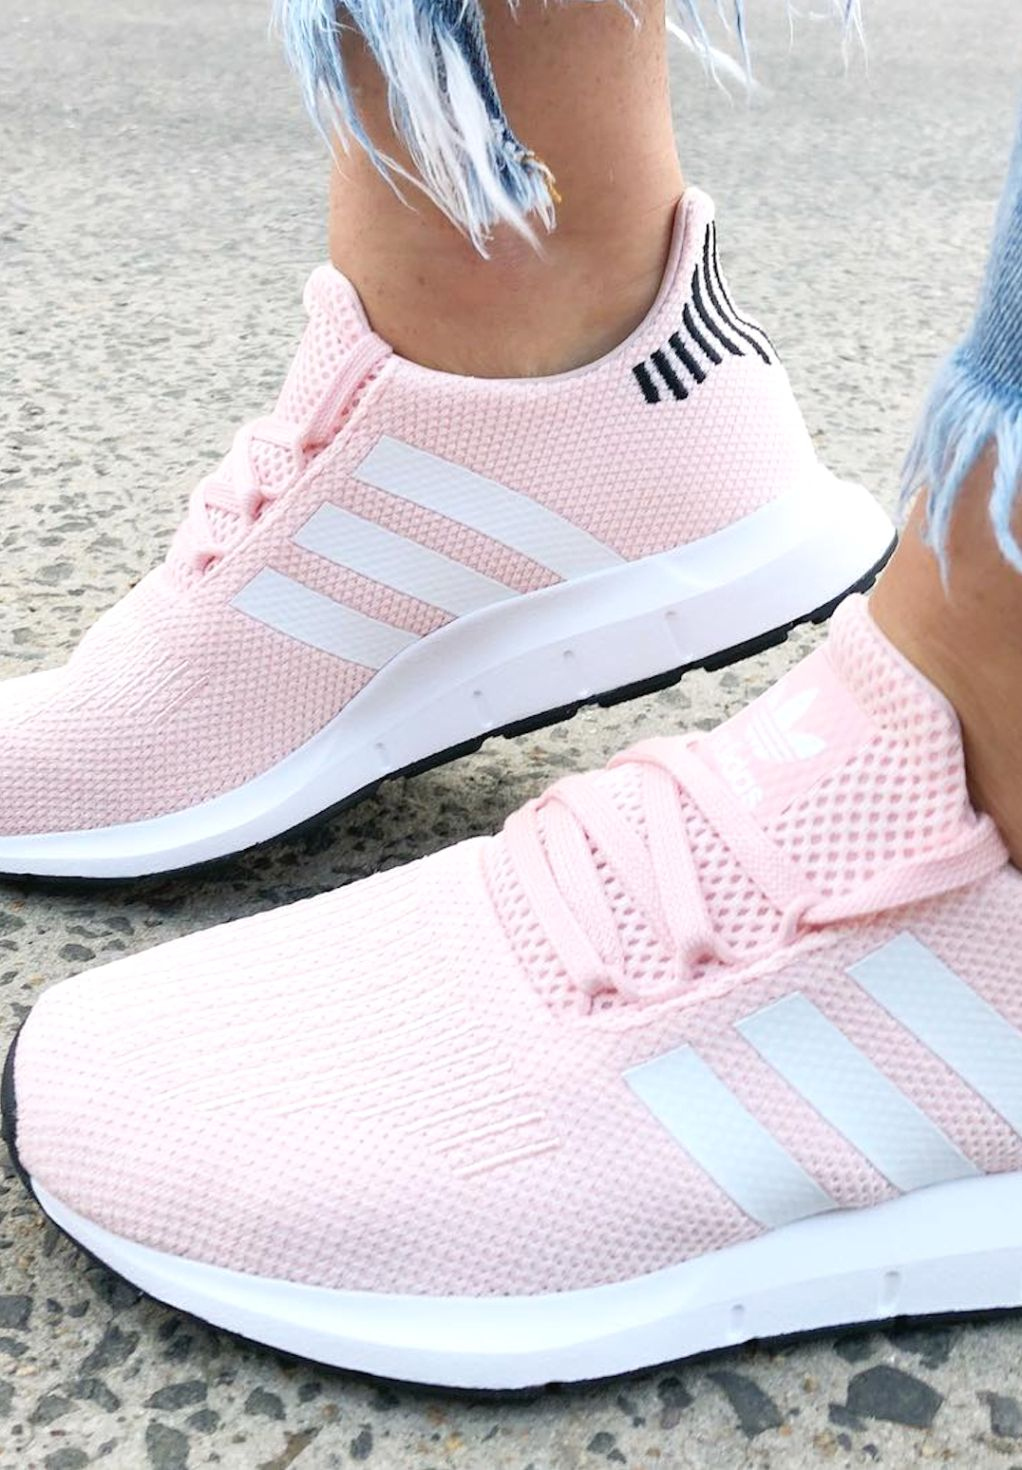 81746d8b sneakersladies | Shoes in 2019 | Shoes, Adidas shoes women, Sneakers ...